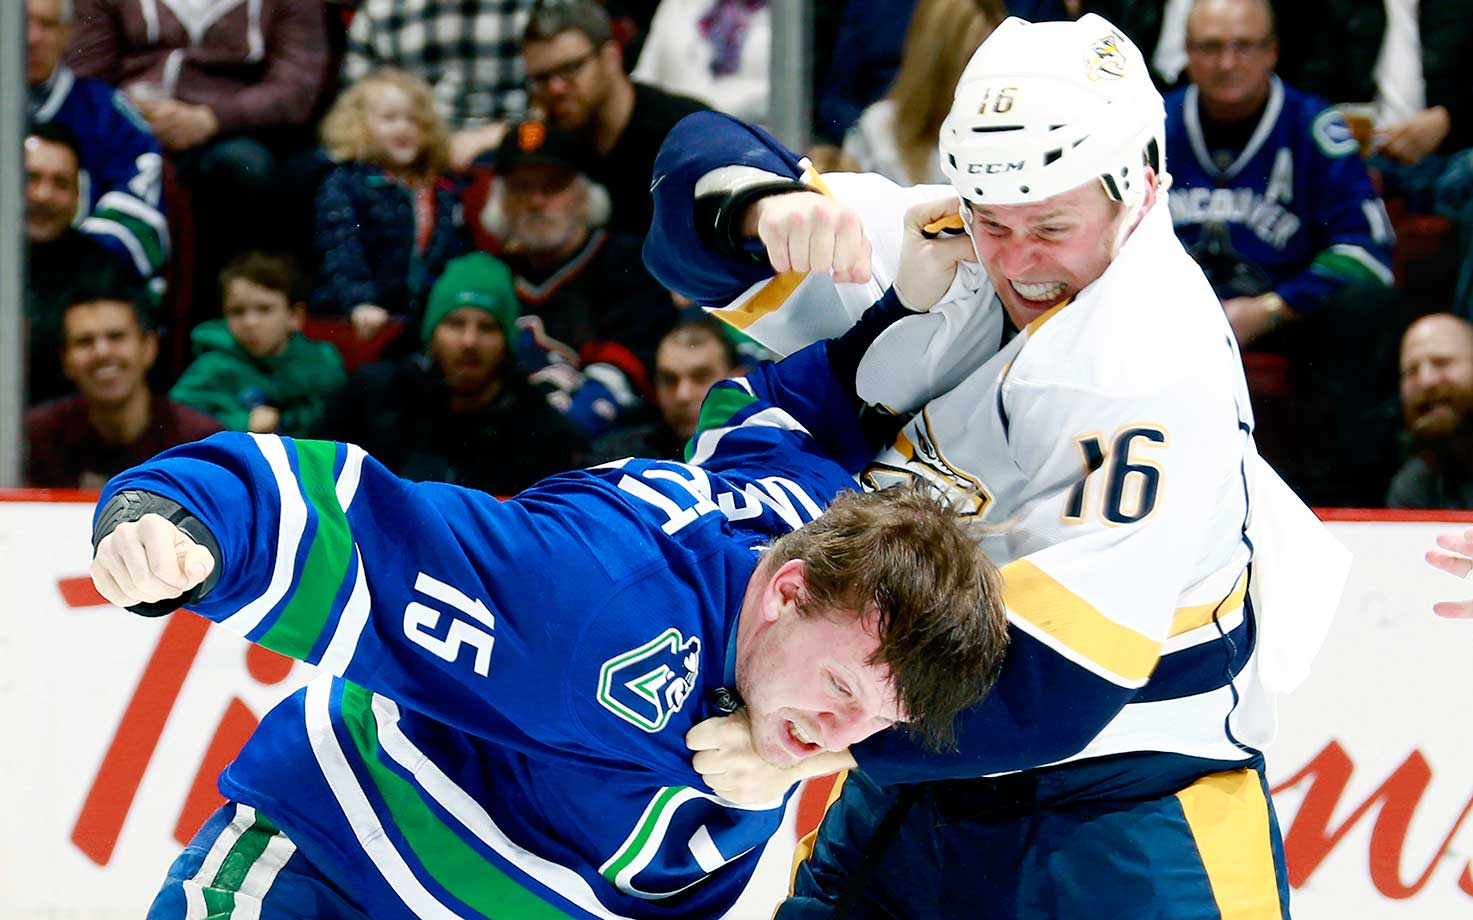 Derek Dorsett of the Vancouver Canucks and Cody Bass of the Nashville Predators fight during their game at Rogers in Vancouver.